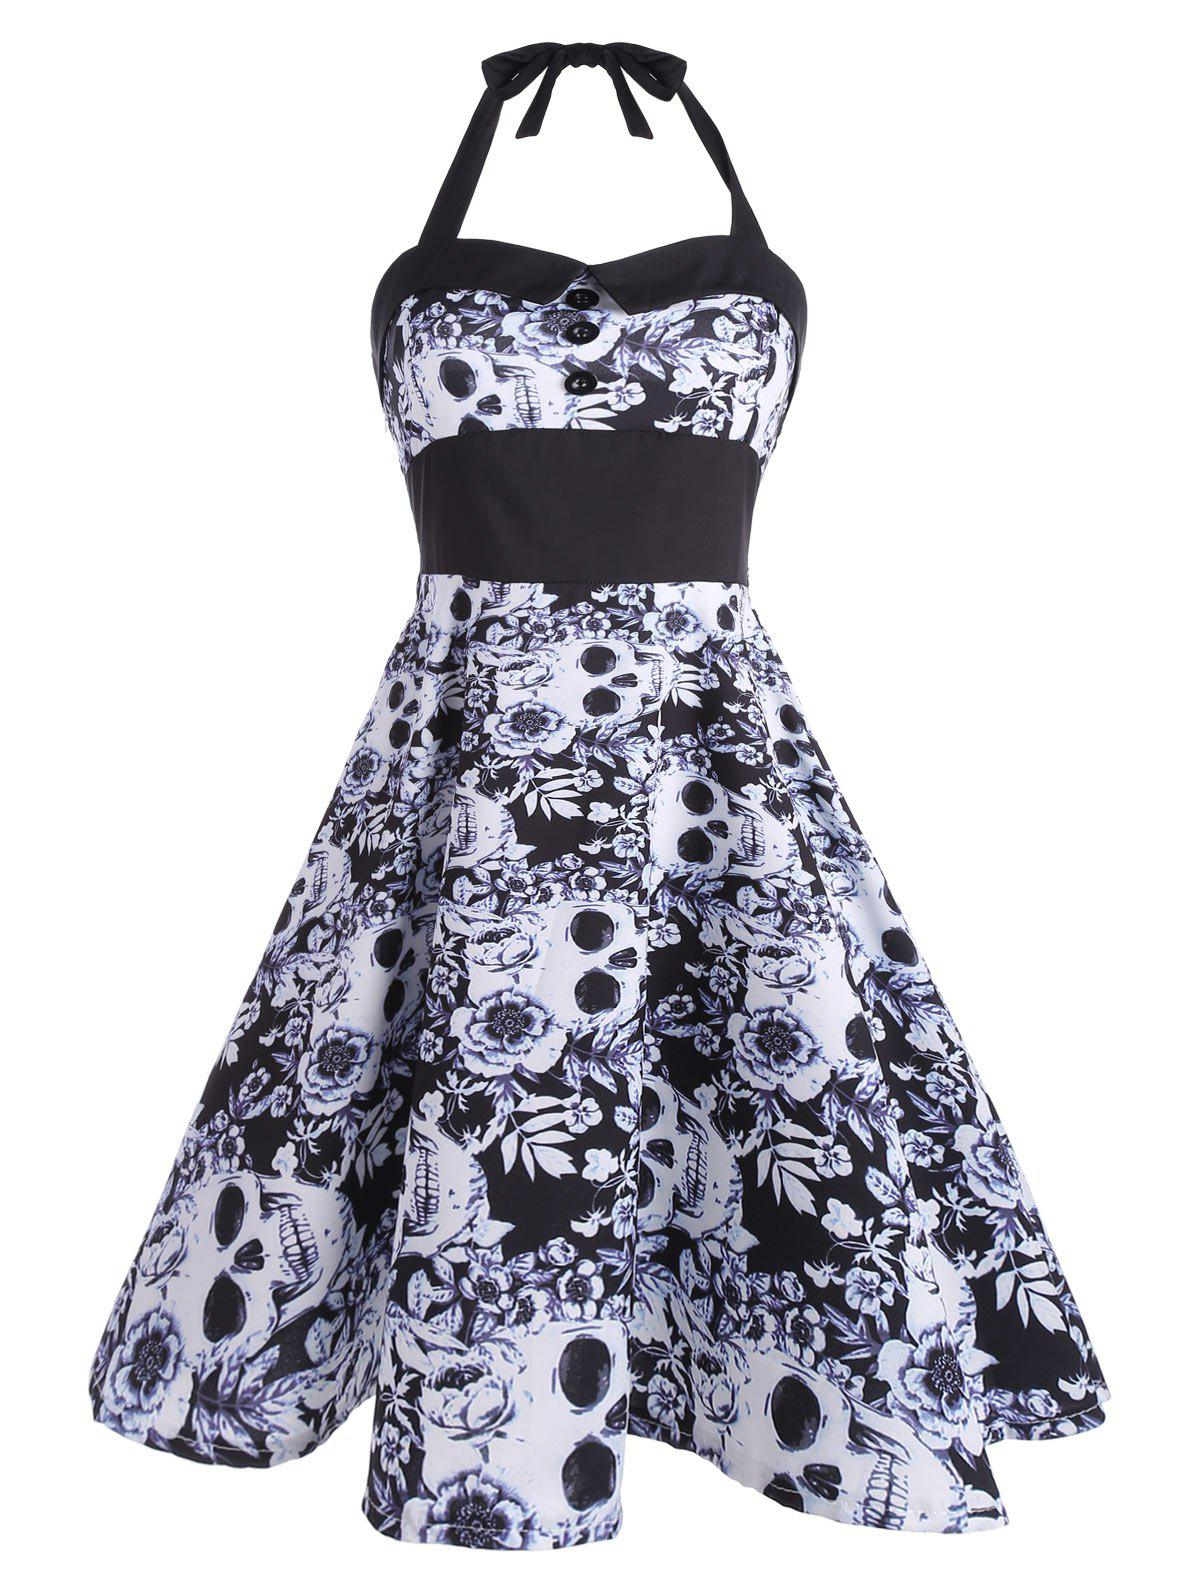 2018 Vintage Floral Skull Print Backless Dress BLACK XL In ...